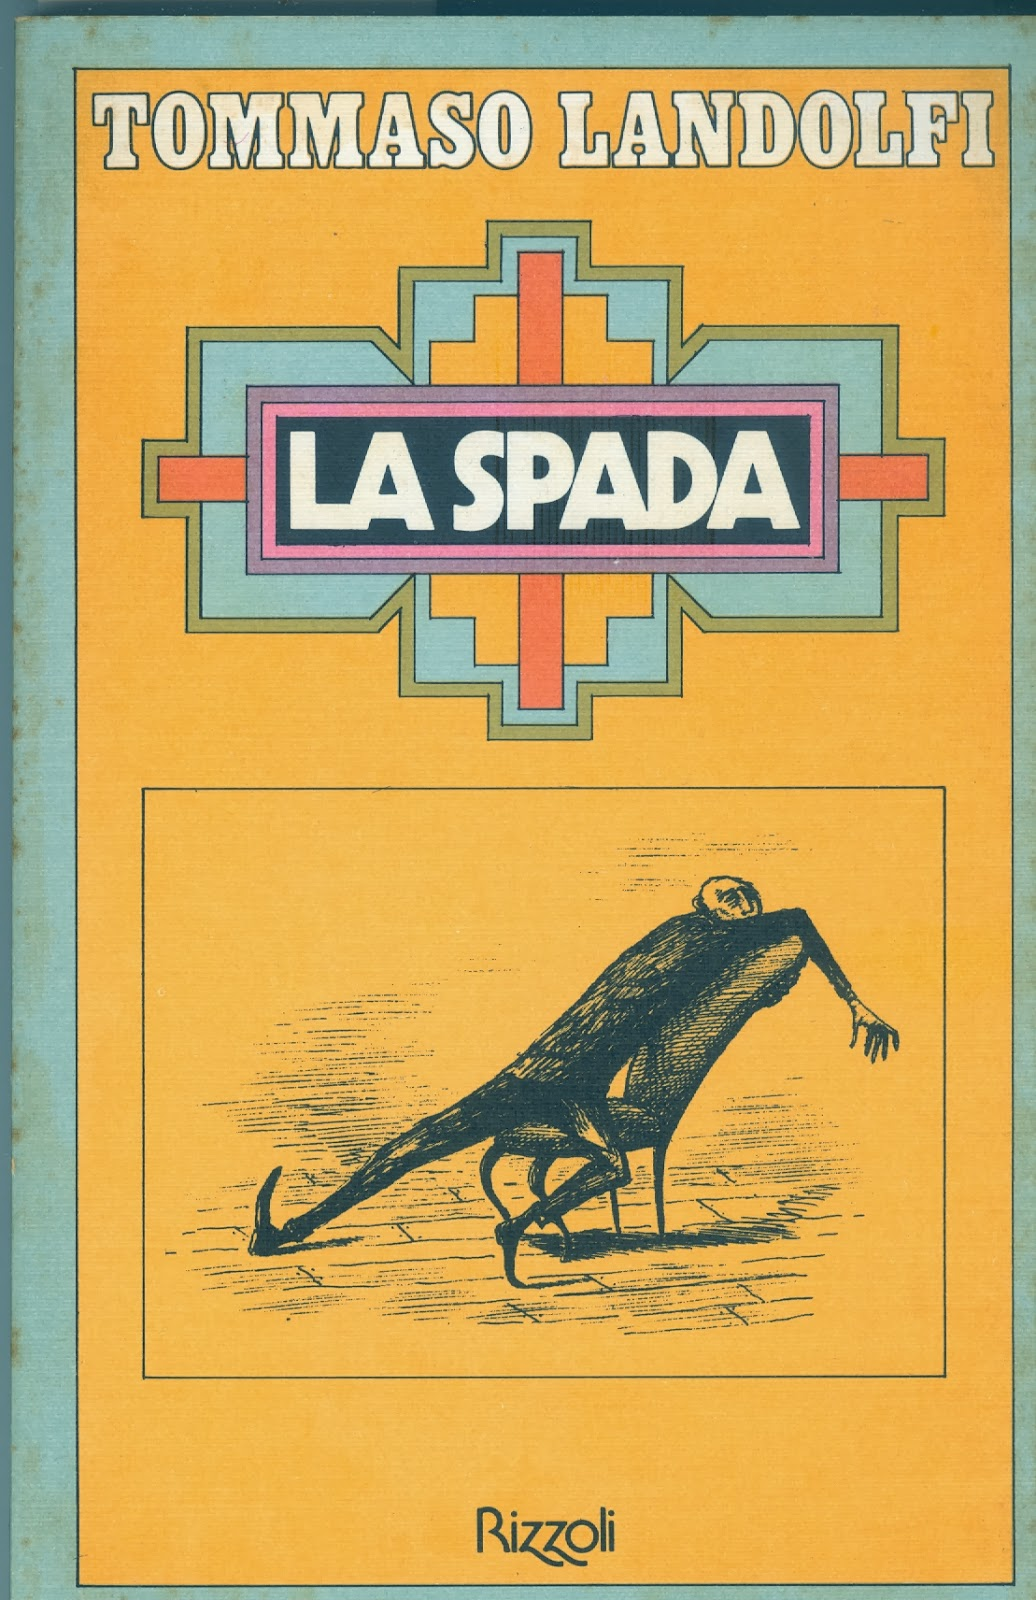 La spada Book Cover